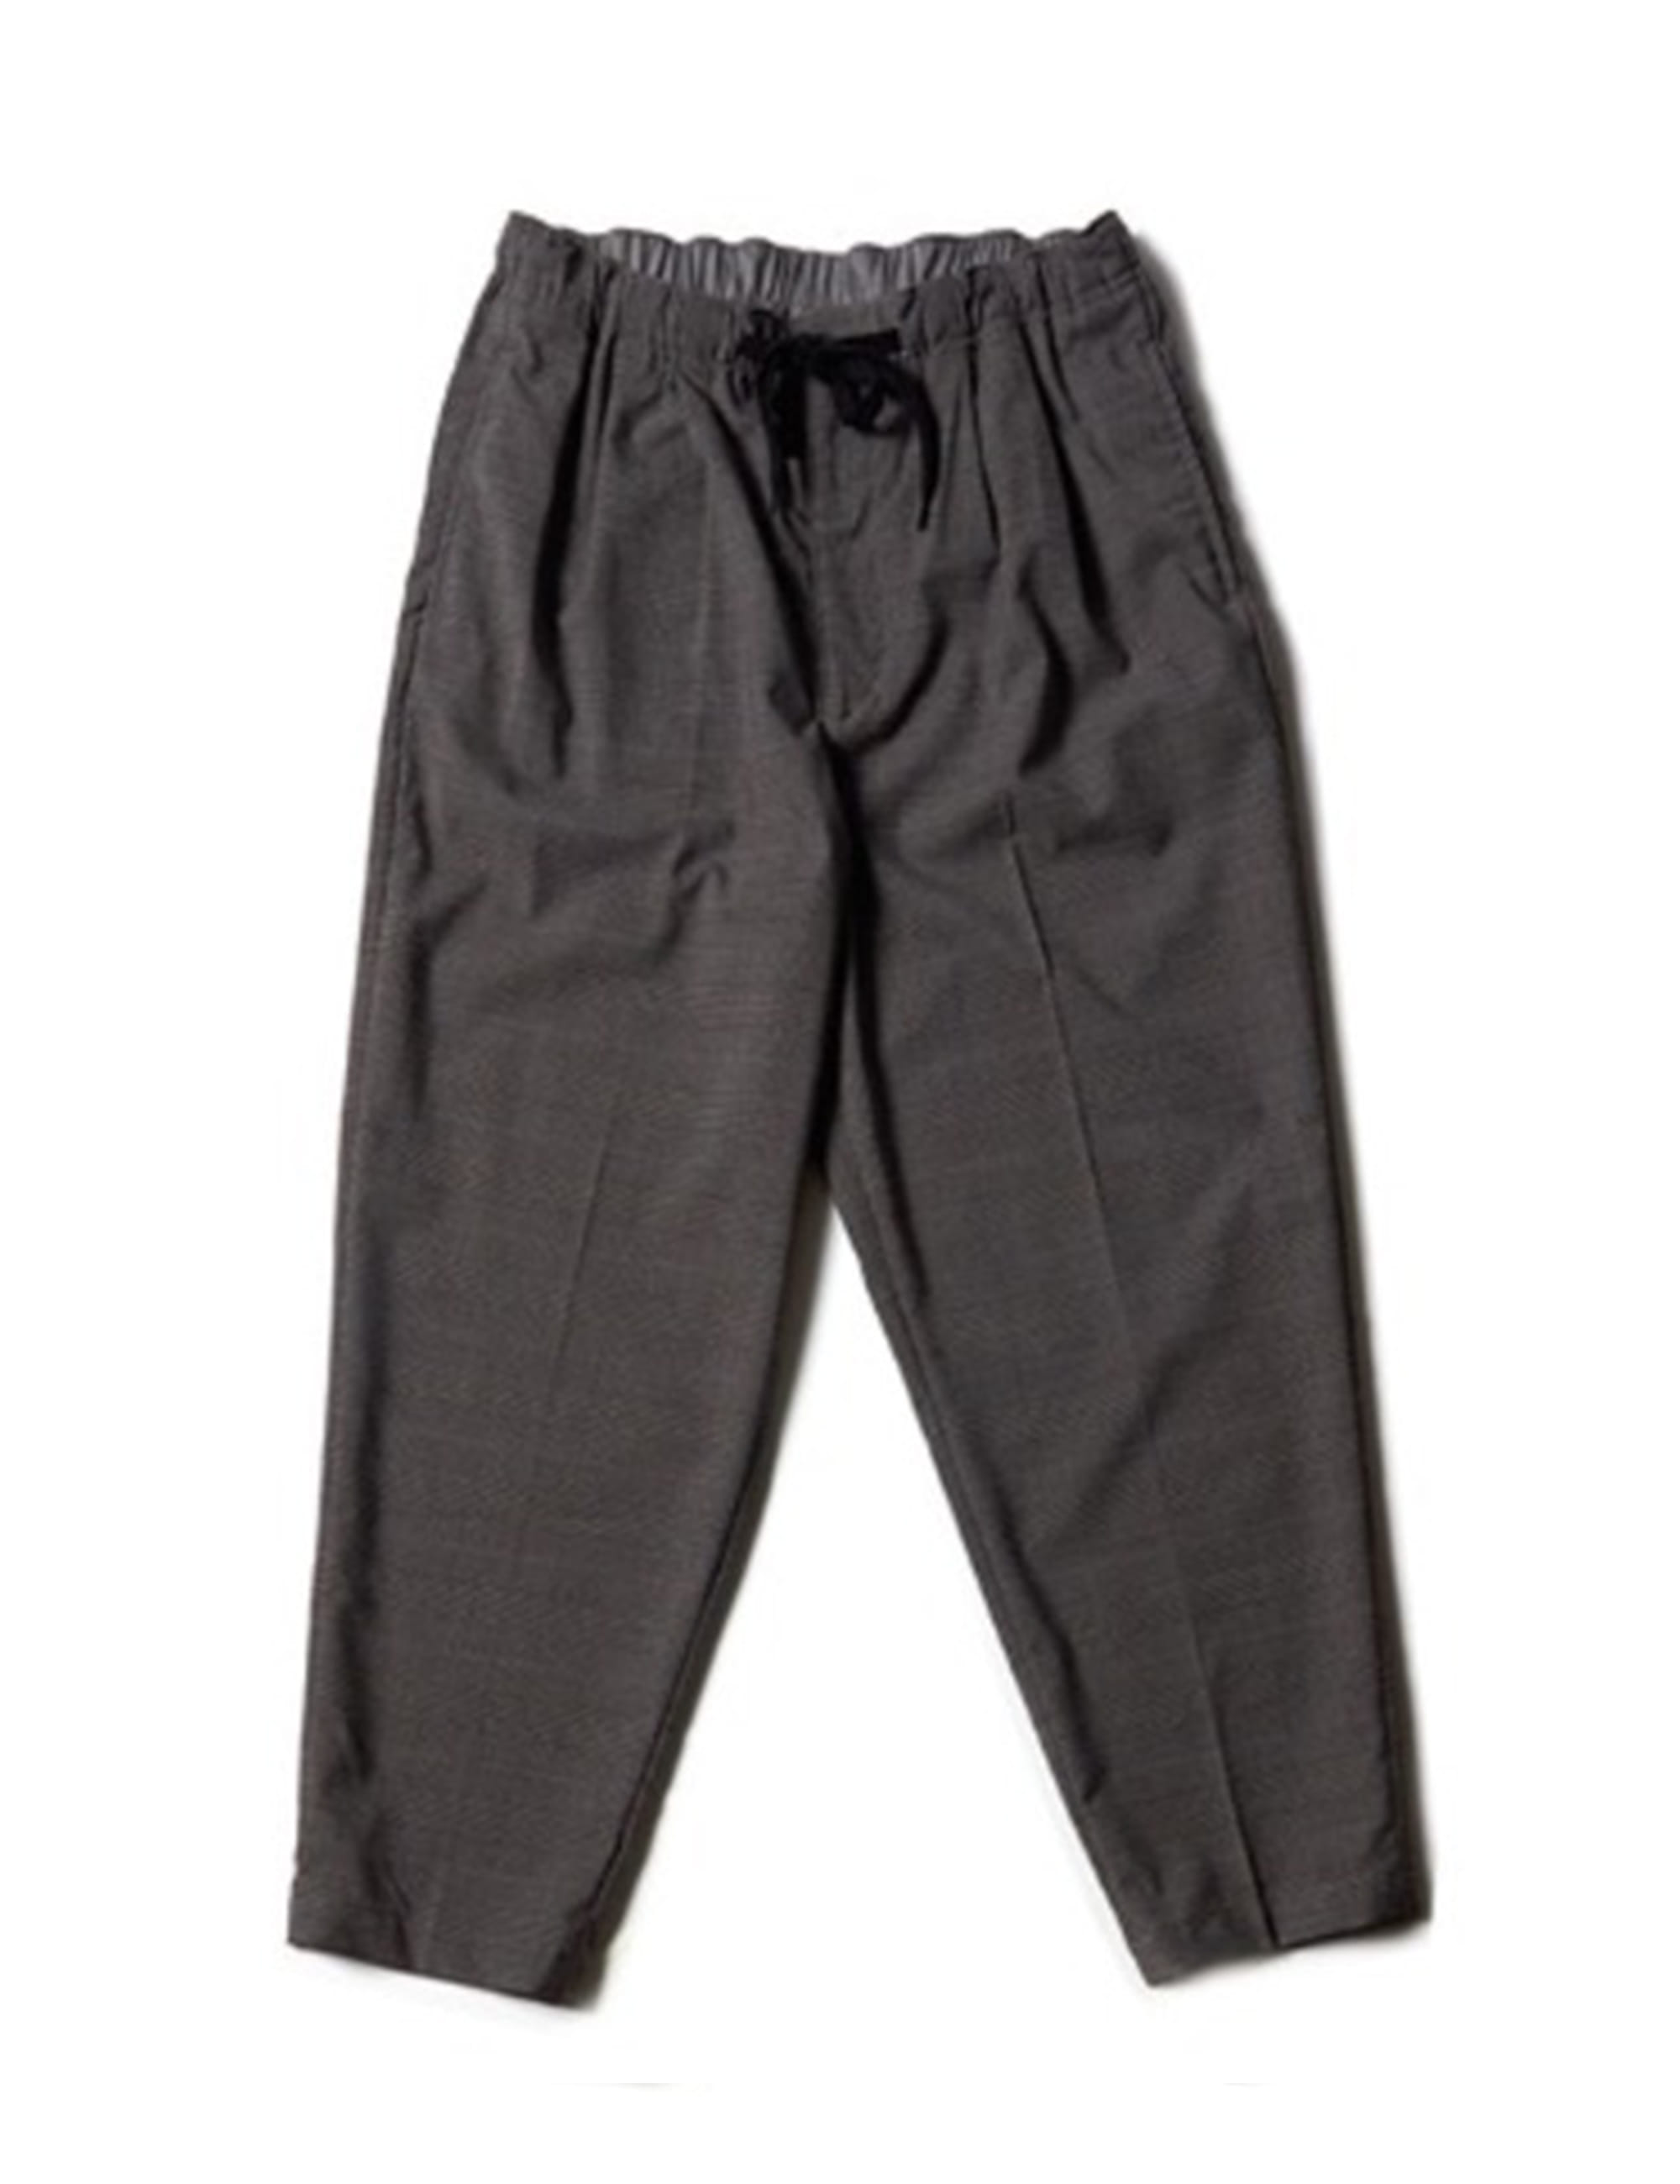 2PLEATS EASY PANTS CHECK_GREY